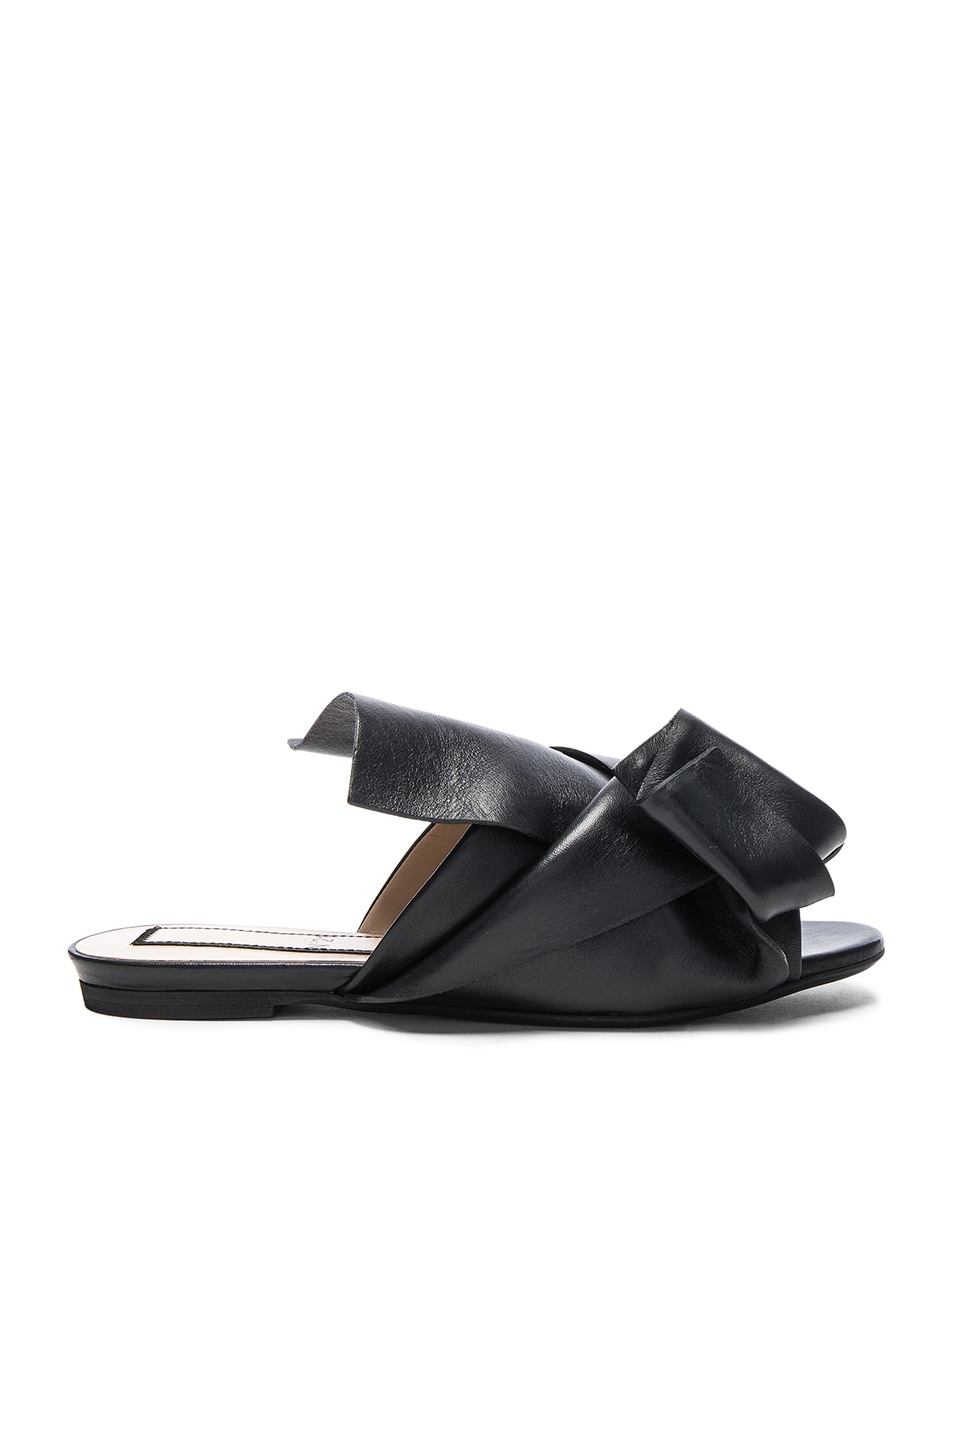 Image 1 of No. 21 Knot Front Leather Sandals in Black Leather